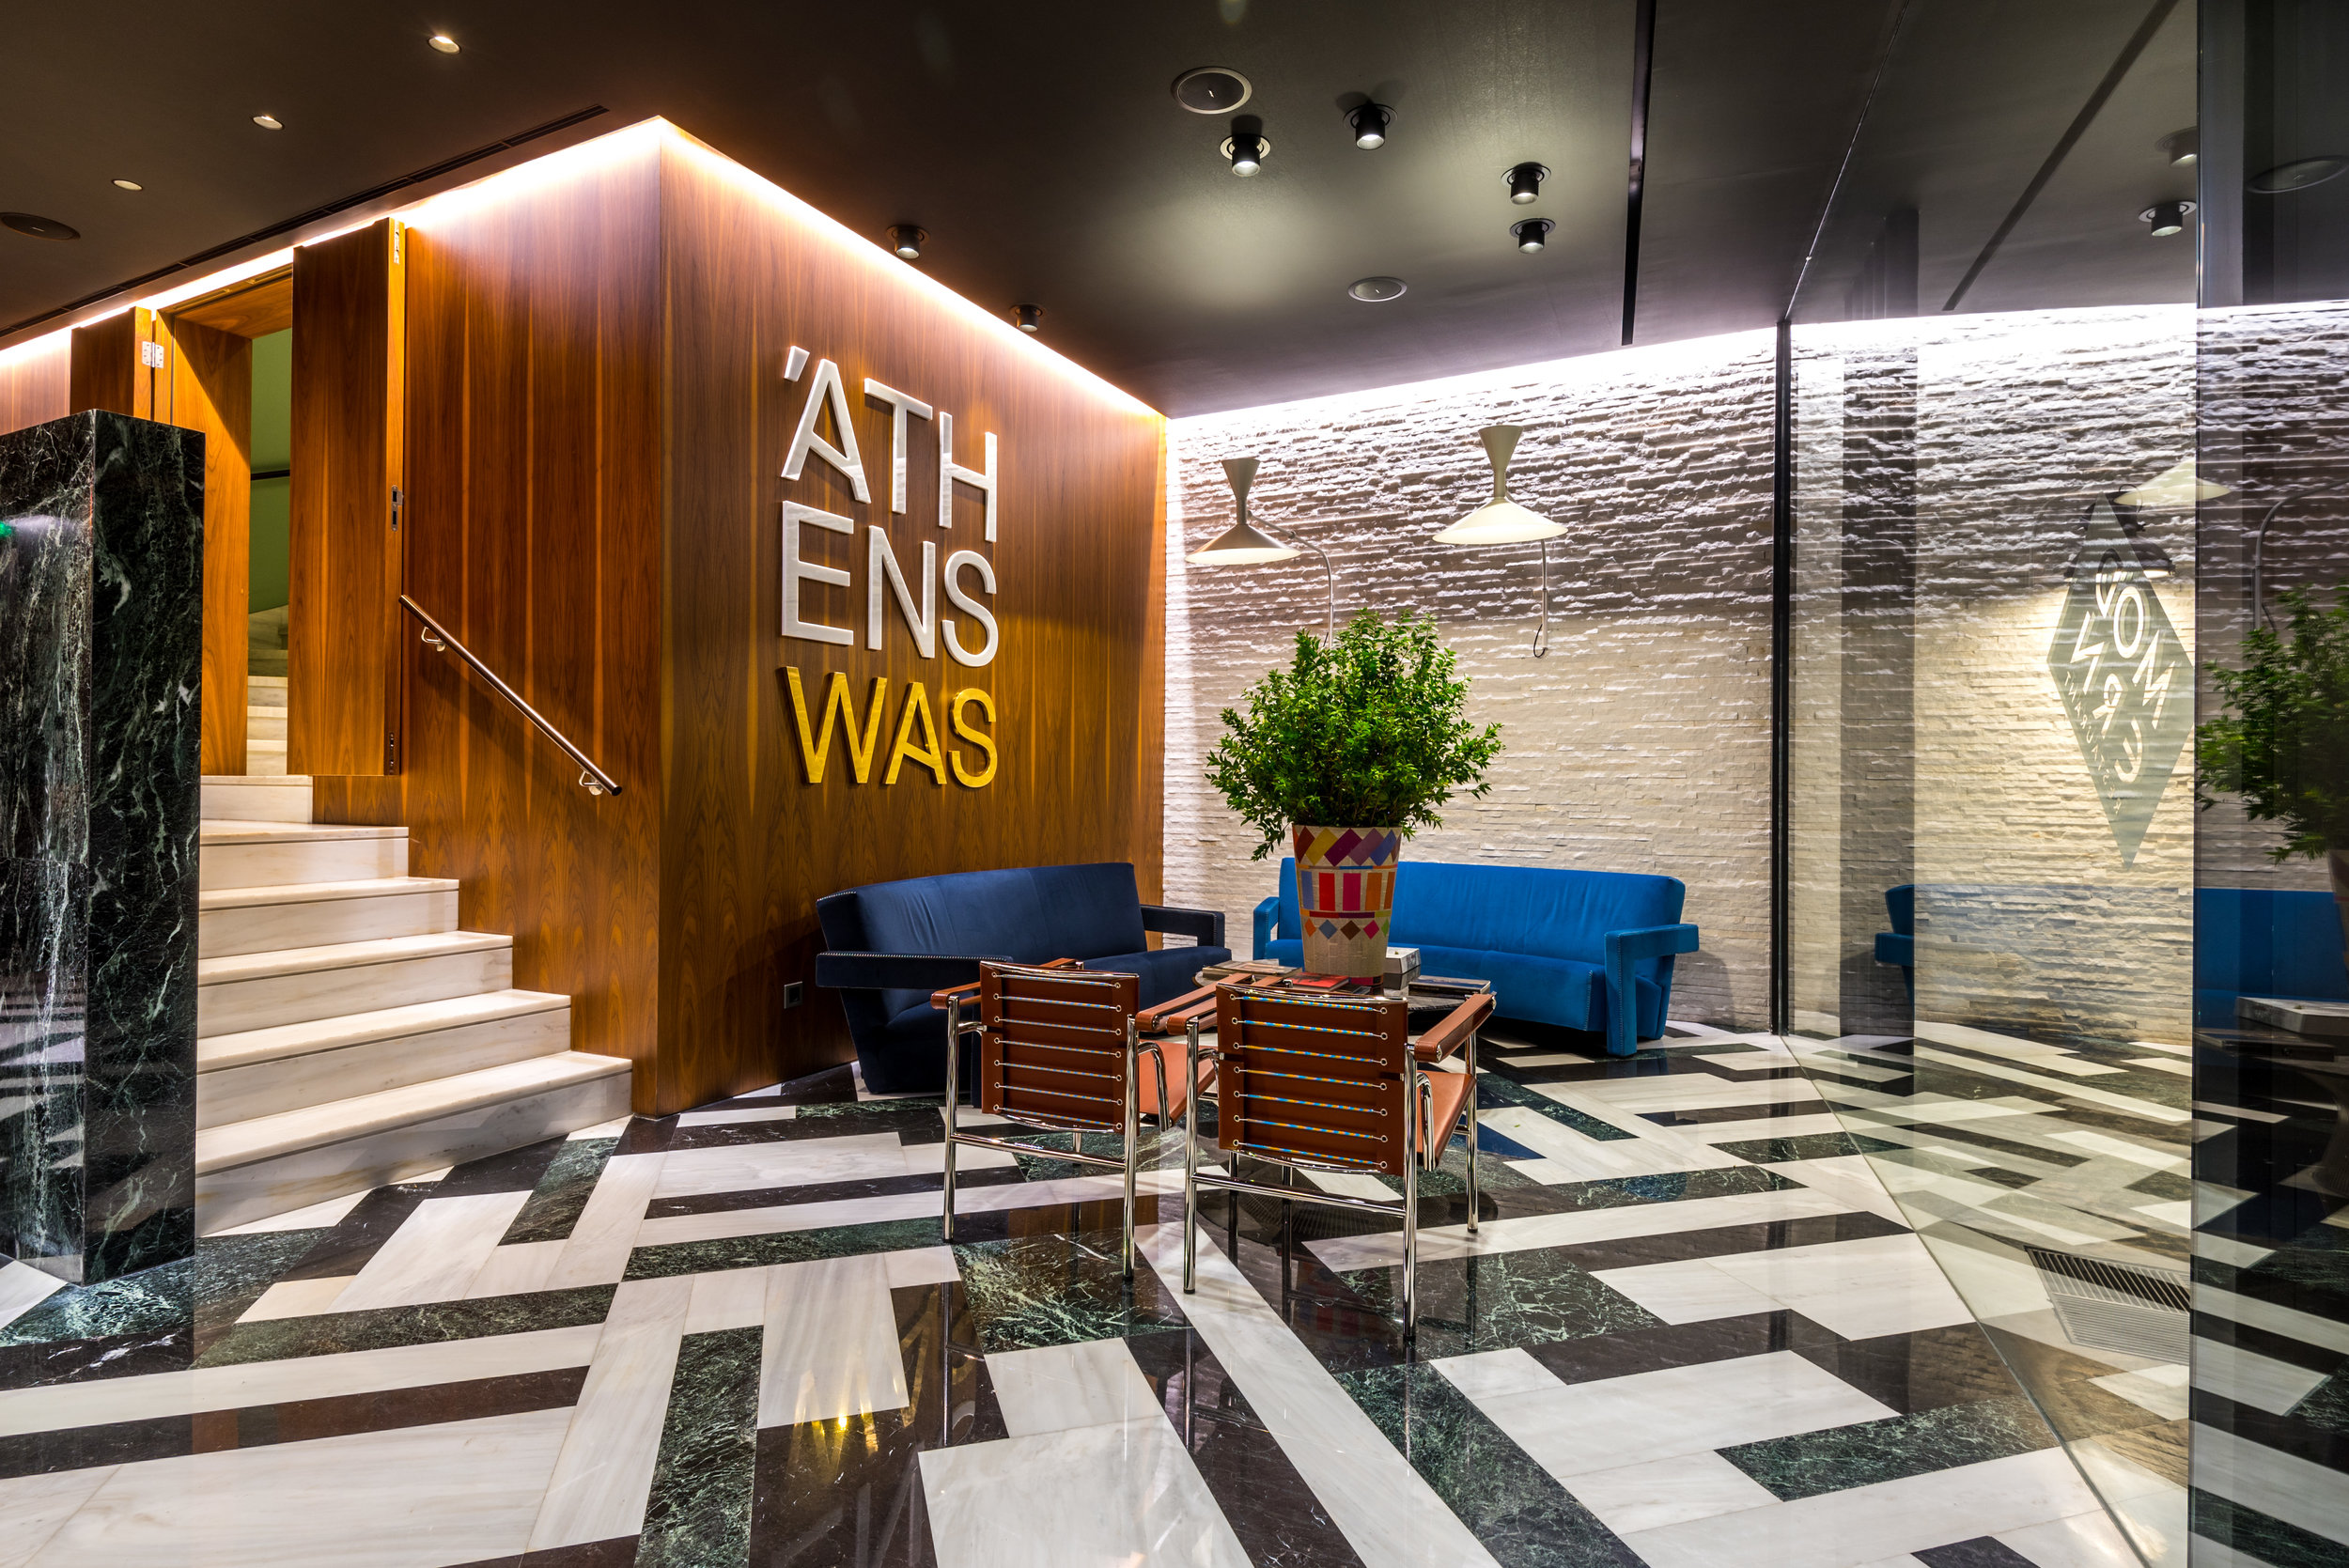 Athenswas hotel a design hotel in the heart of athens for Design hotel athens